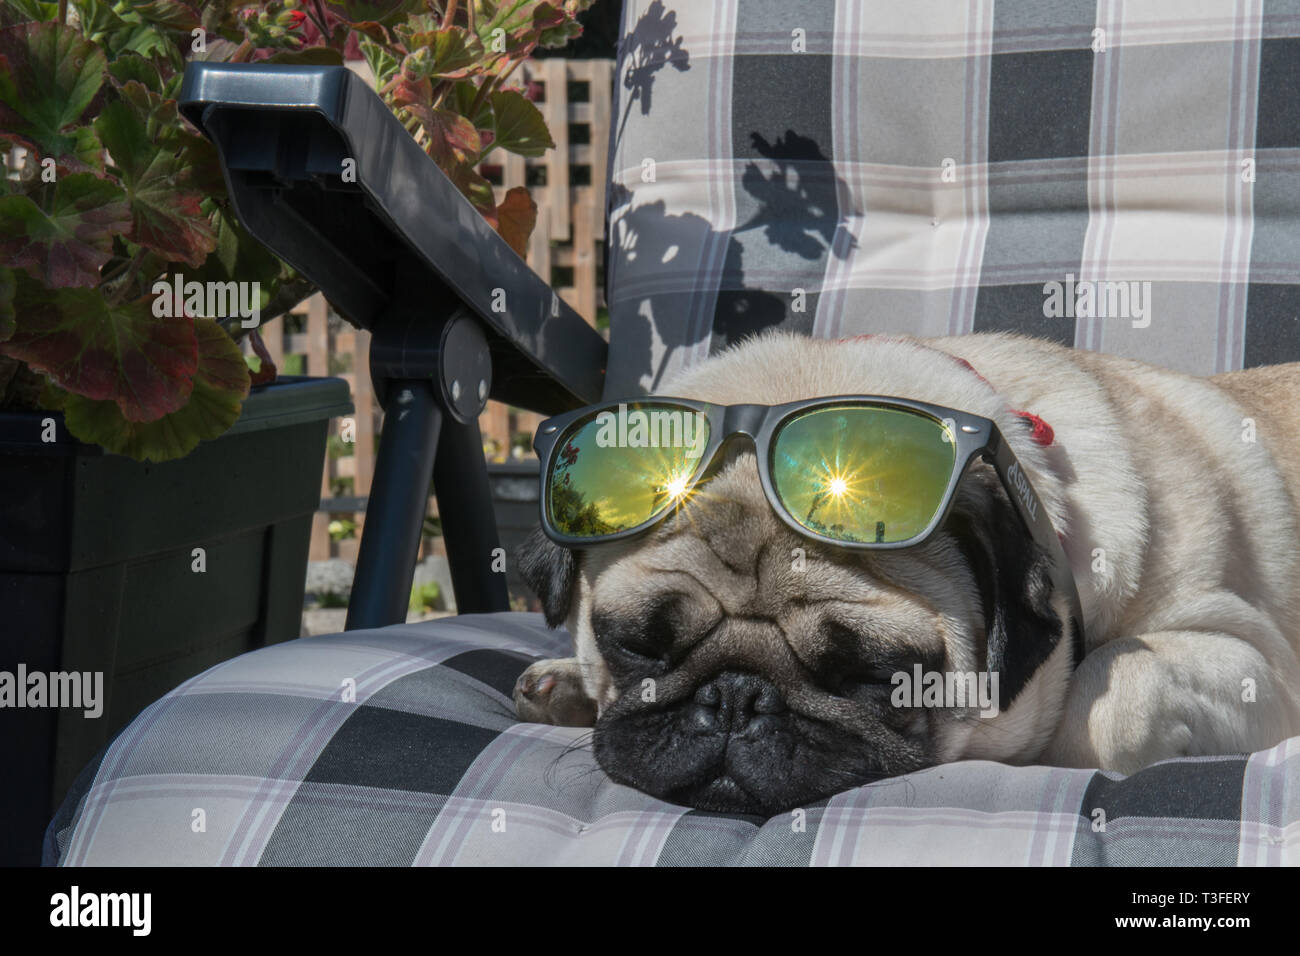 Mousehole, Cornwall, UK. 9th April 2019. UK WEather. Titan the pug up out yet again on his sunlounger this afternoon, as temperatures in south west Cornwall went over 16 degrees C. Credit: Simon Maycock/Alamy Live News Stock Photo